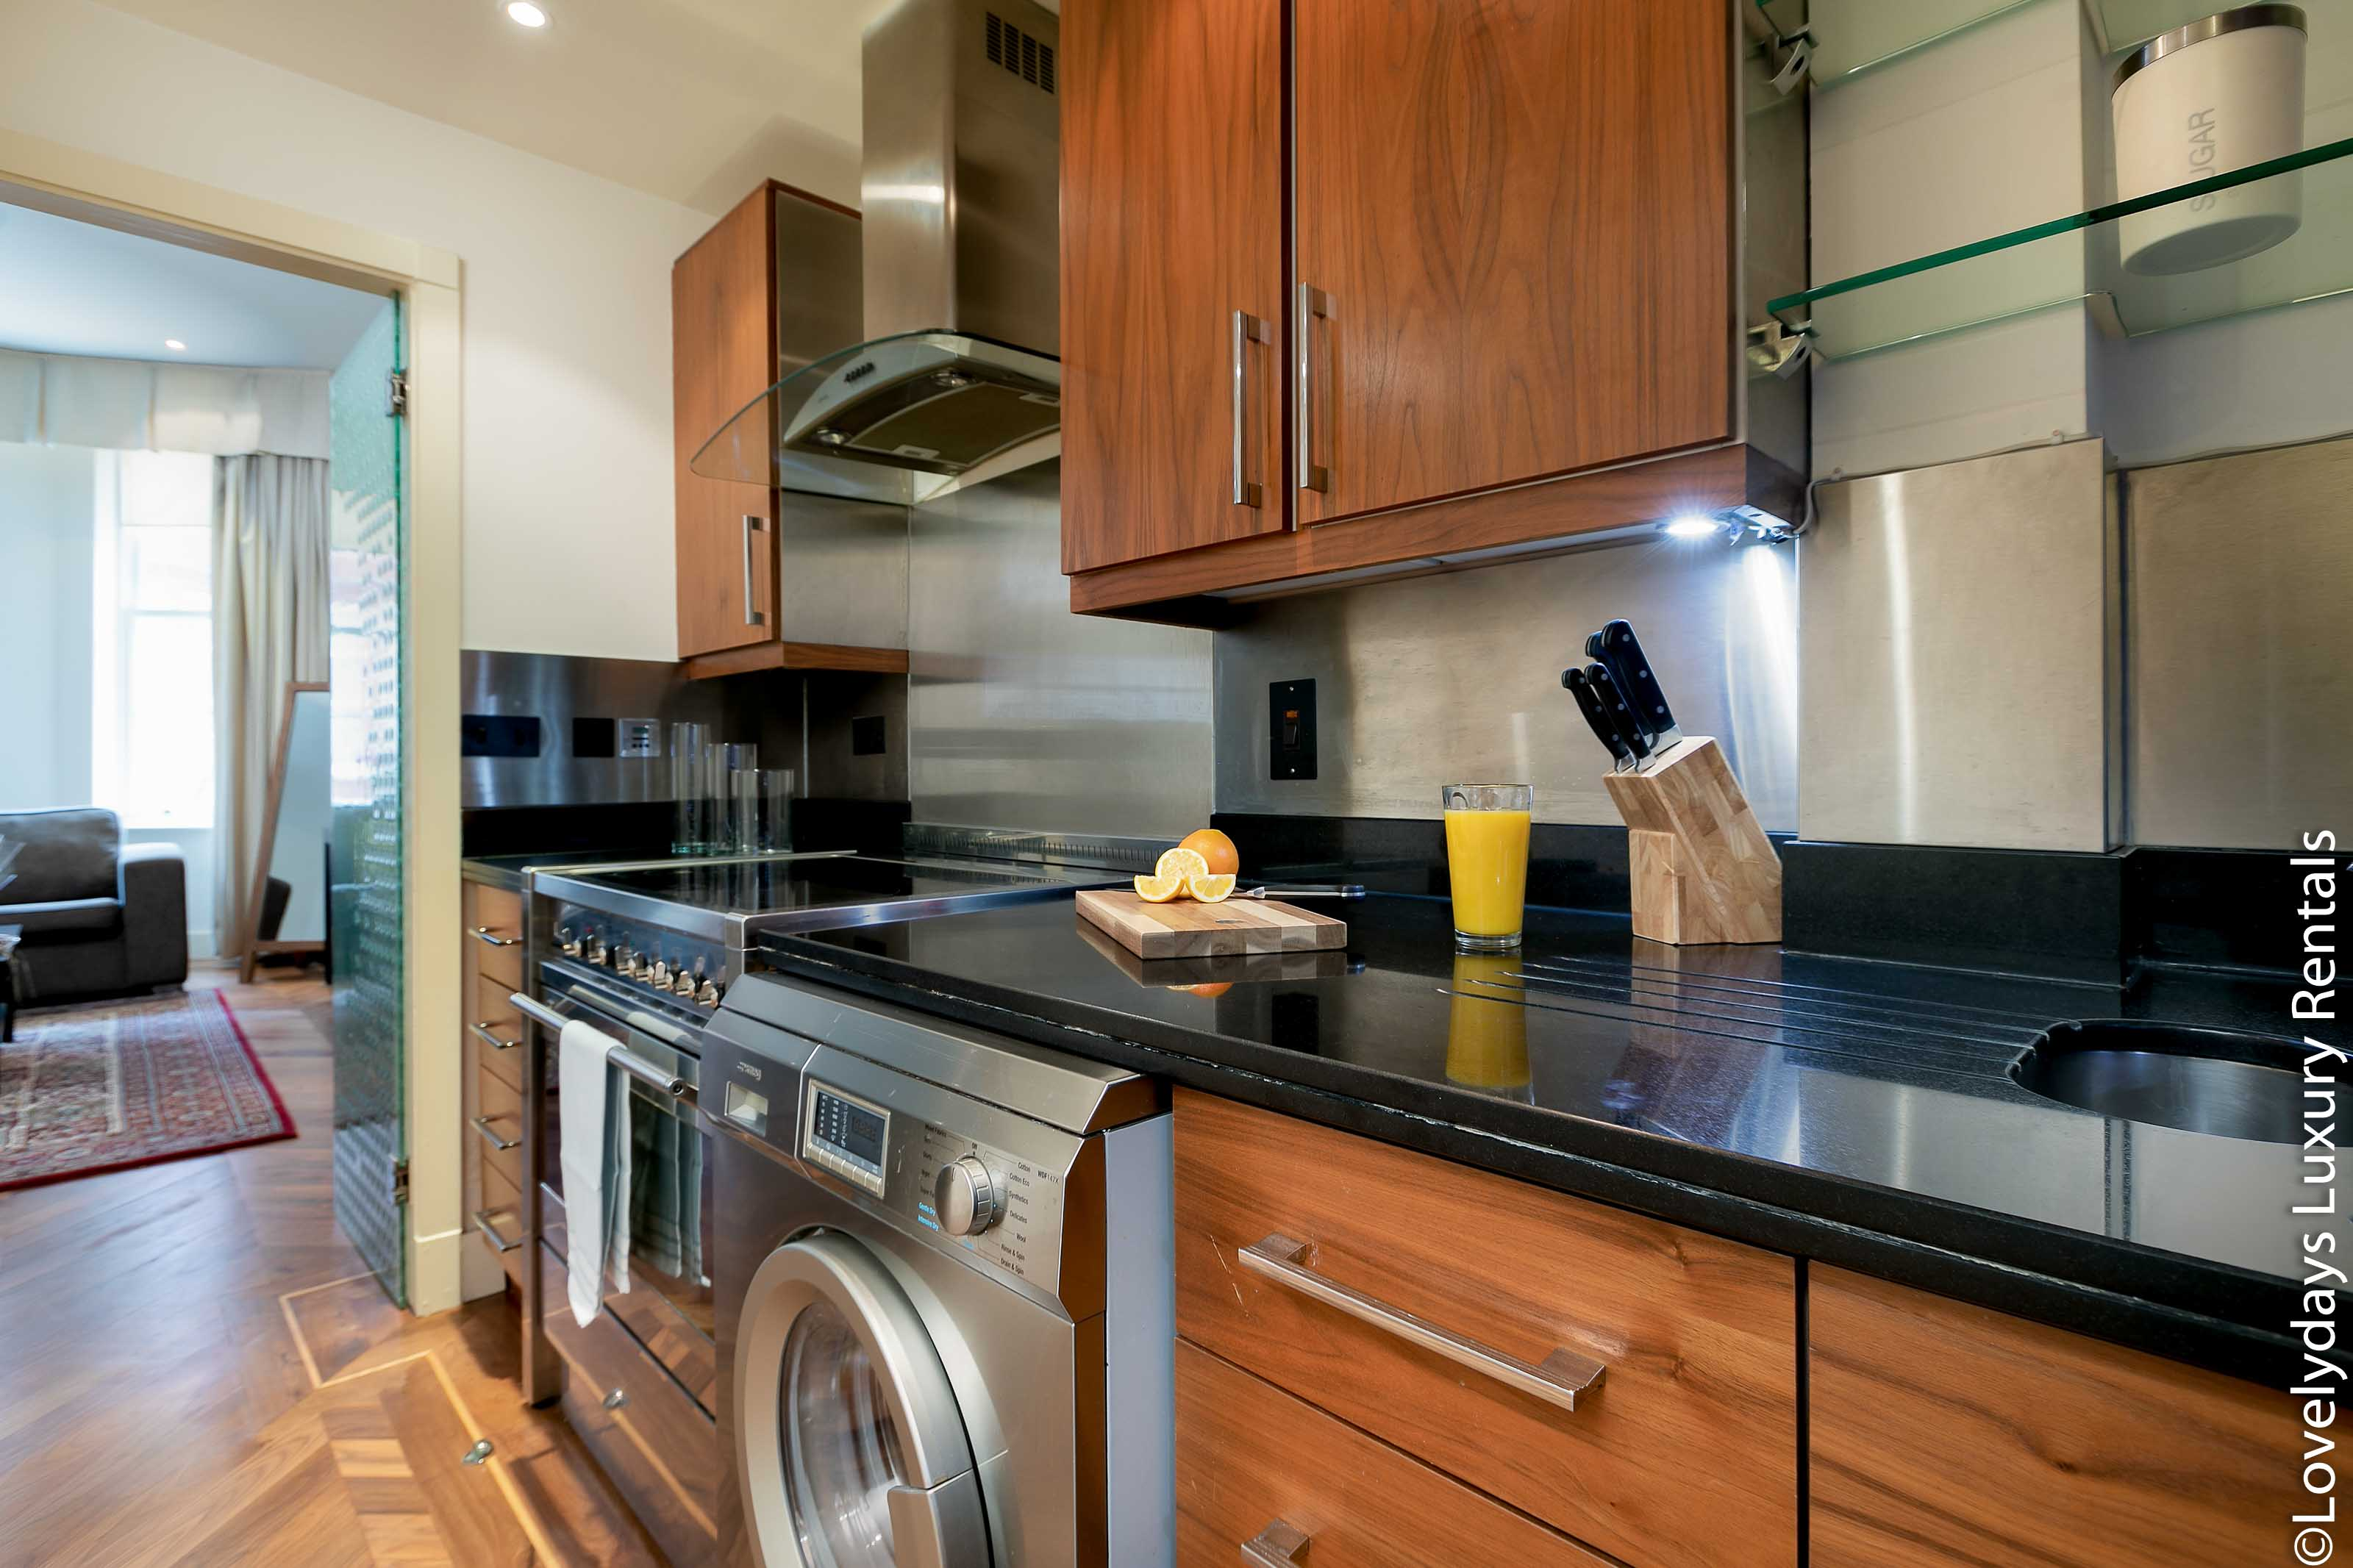 Lovelydays luxury service apartment rental - London - Knightsbridge - Hans Crescent - Partner - 2 bedrooms - 2 bathrooms - Luxury kitchen - 55ec168d570d - Lovelydays